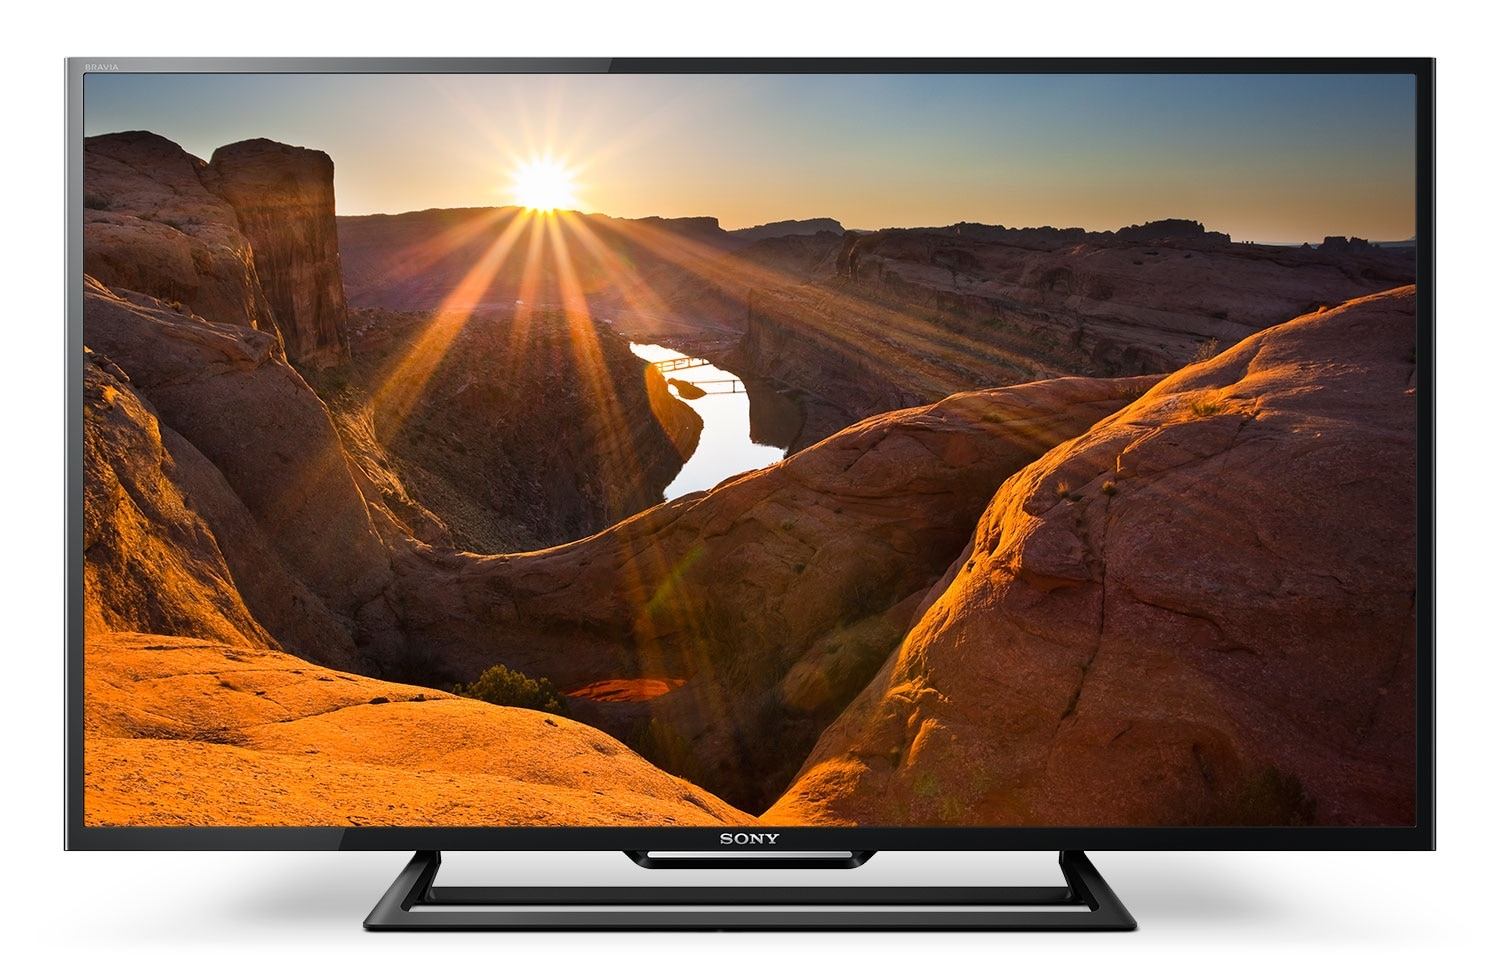 Sony R550C TV Collection